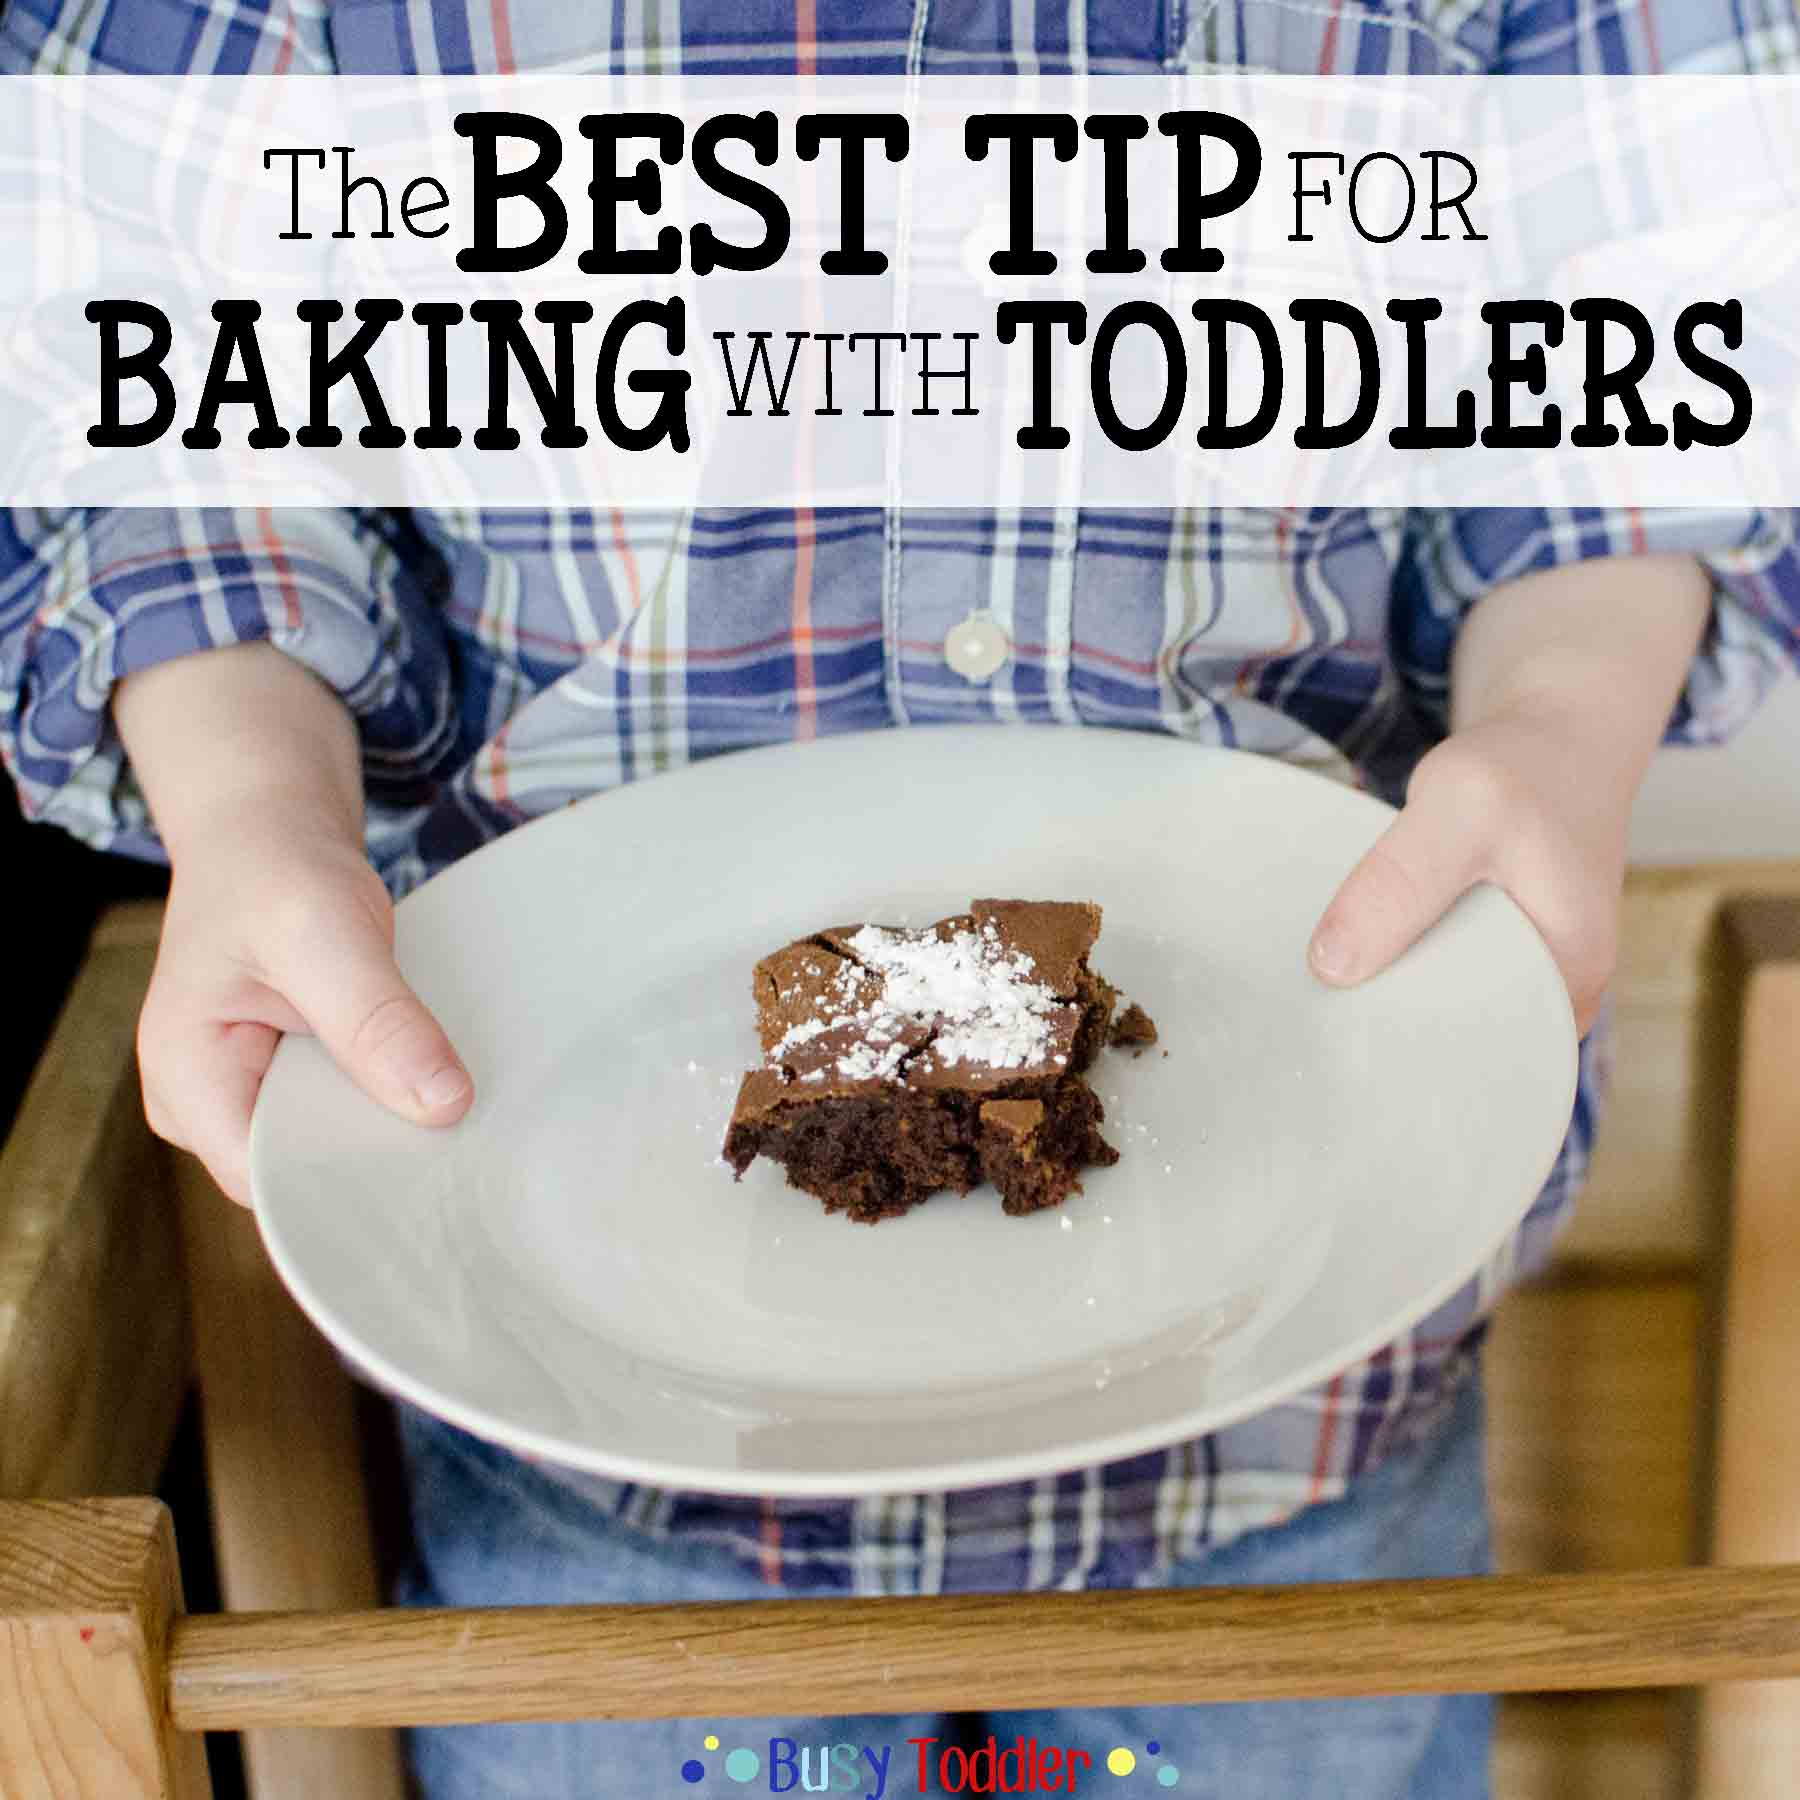 BAKING WITH TODDLERS: A fantastic tip to help make baking with little ones a success.